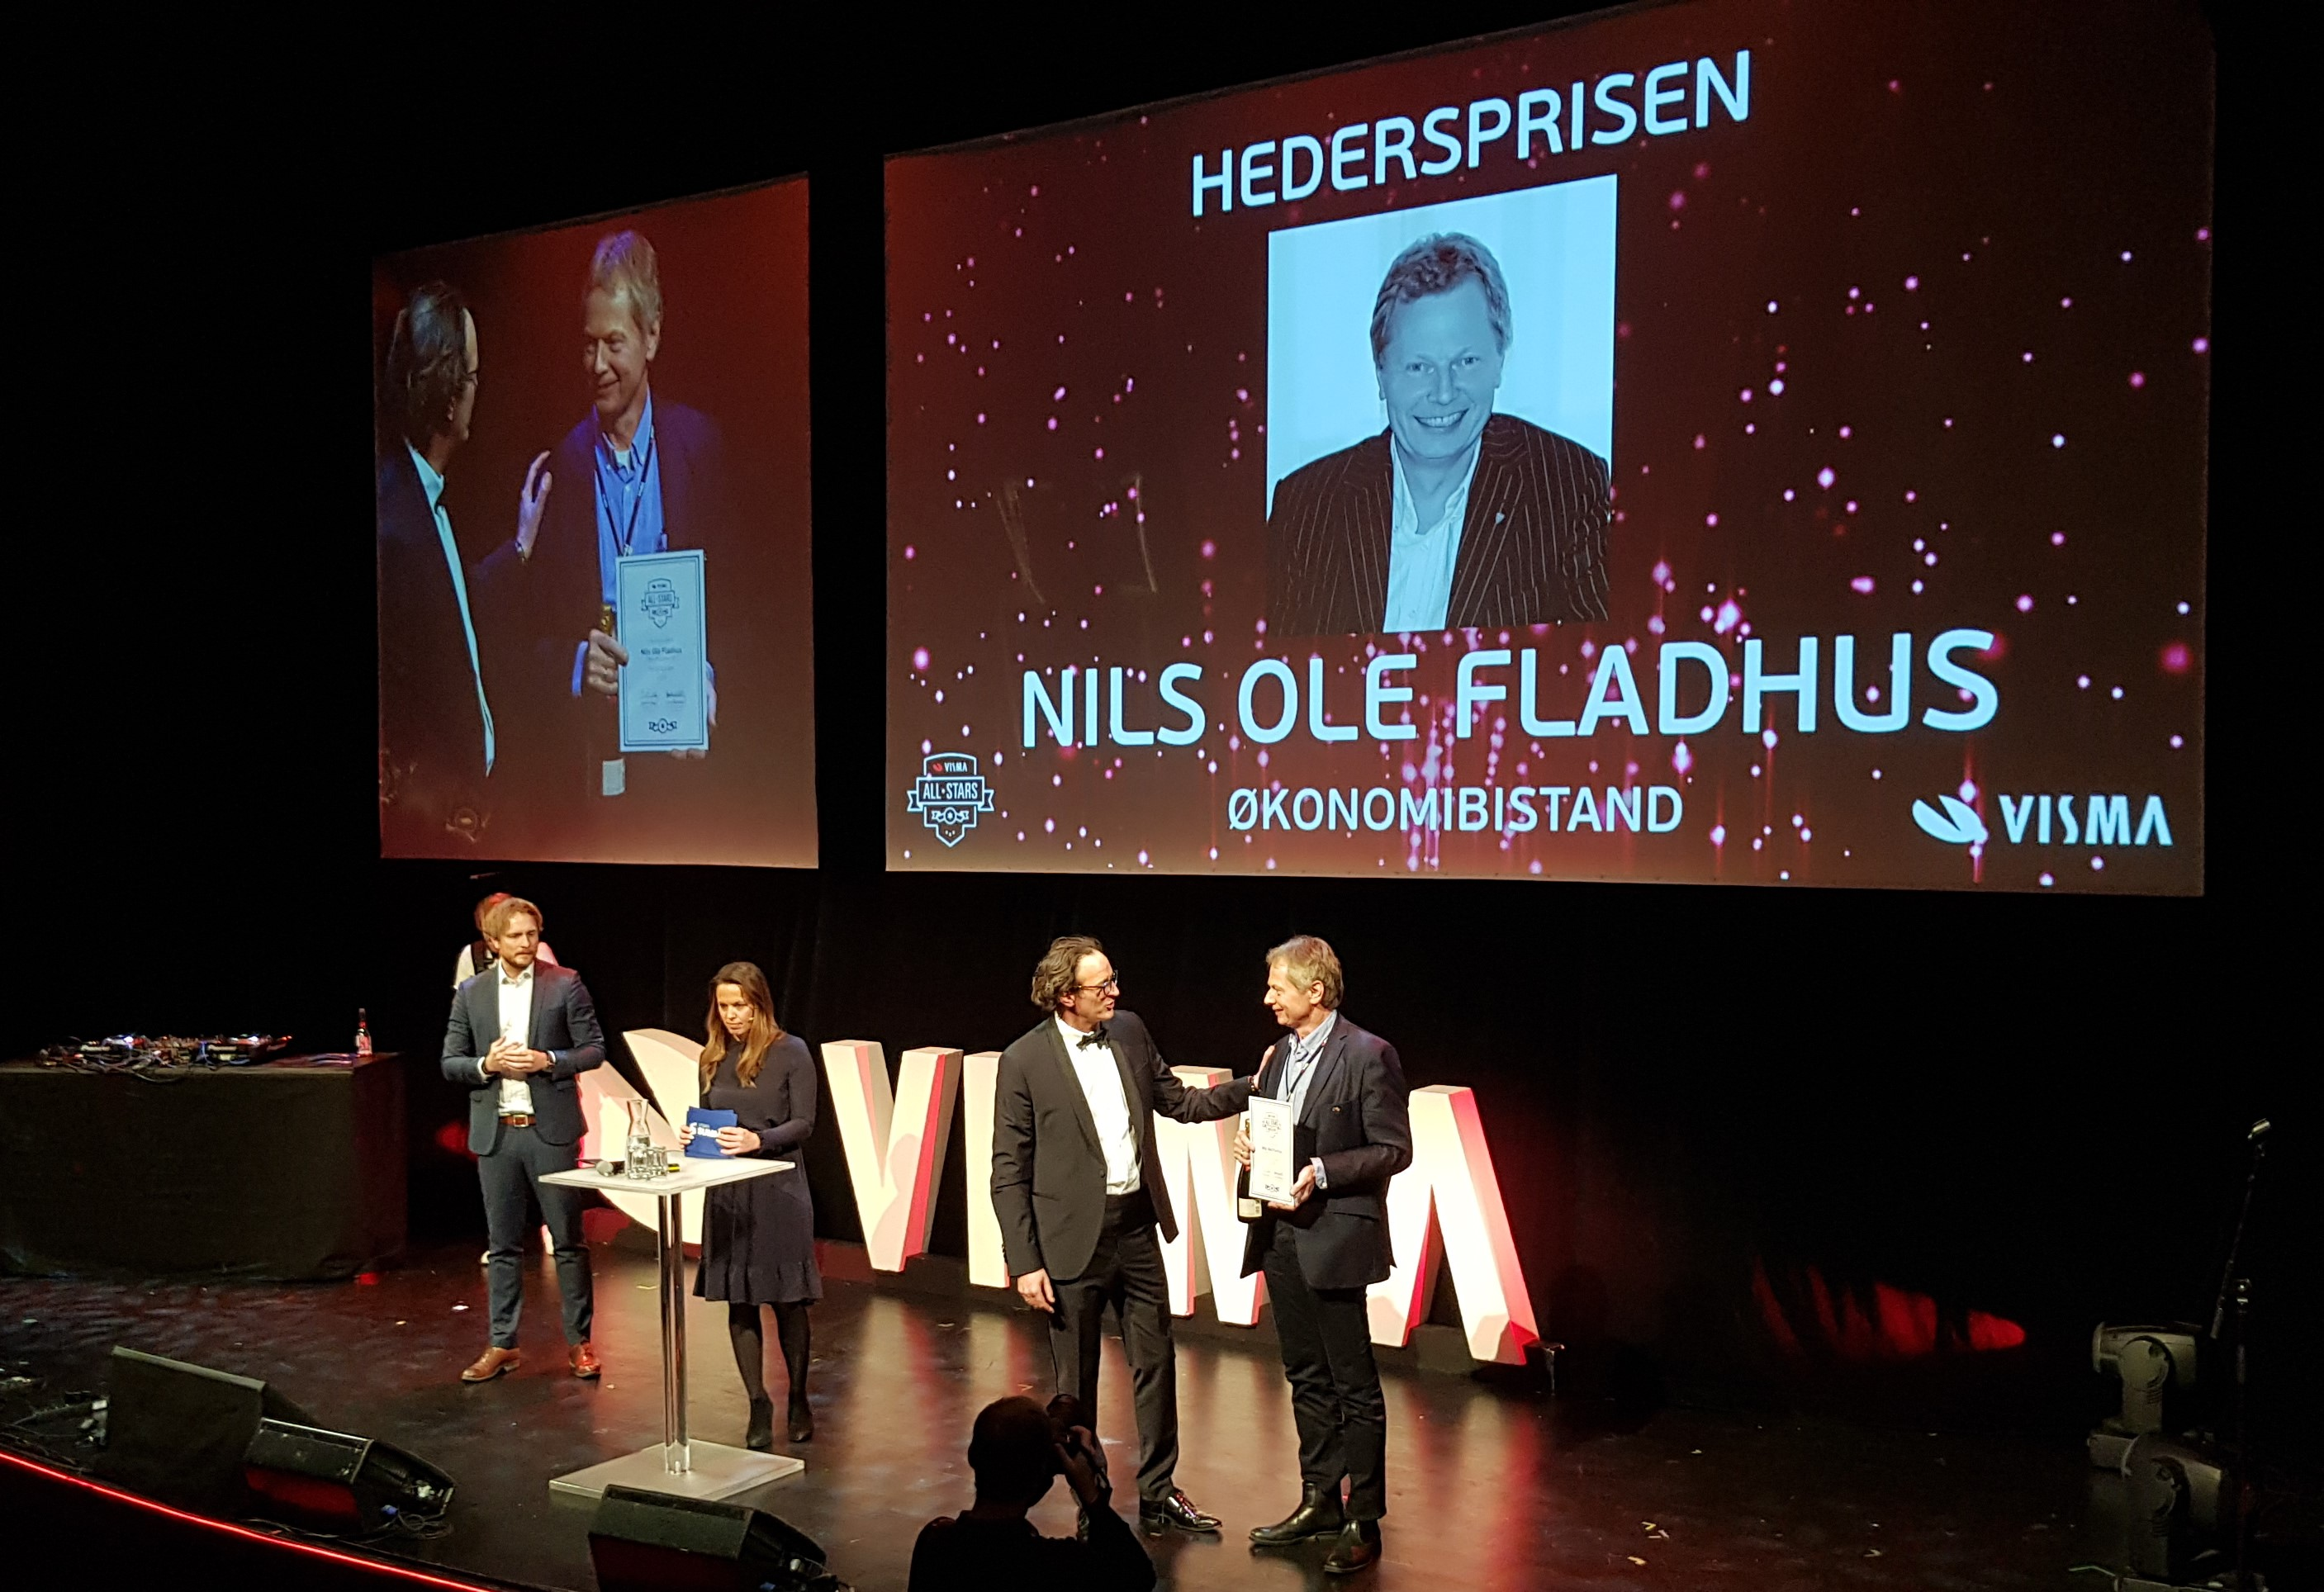 Nils Ole Fladhus accept the honorary award from Visma Software